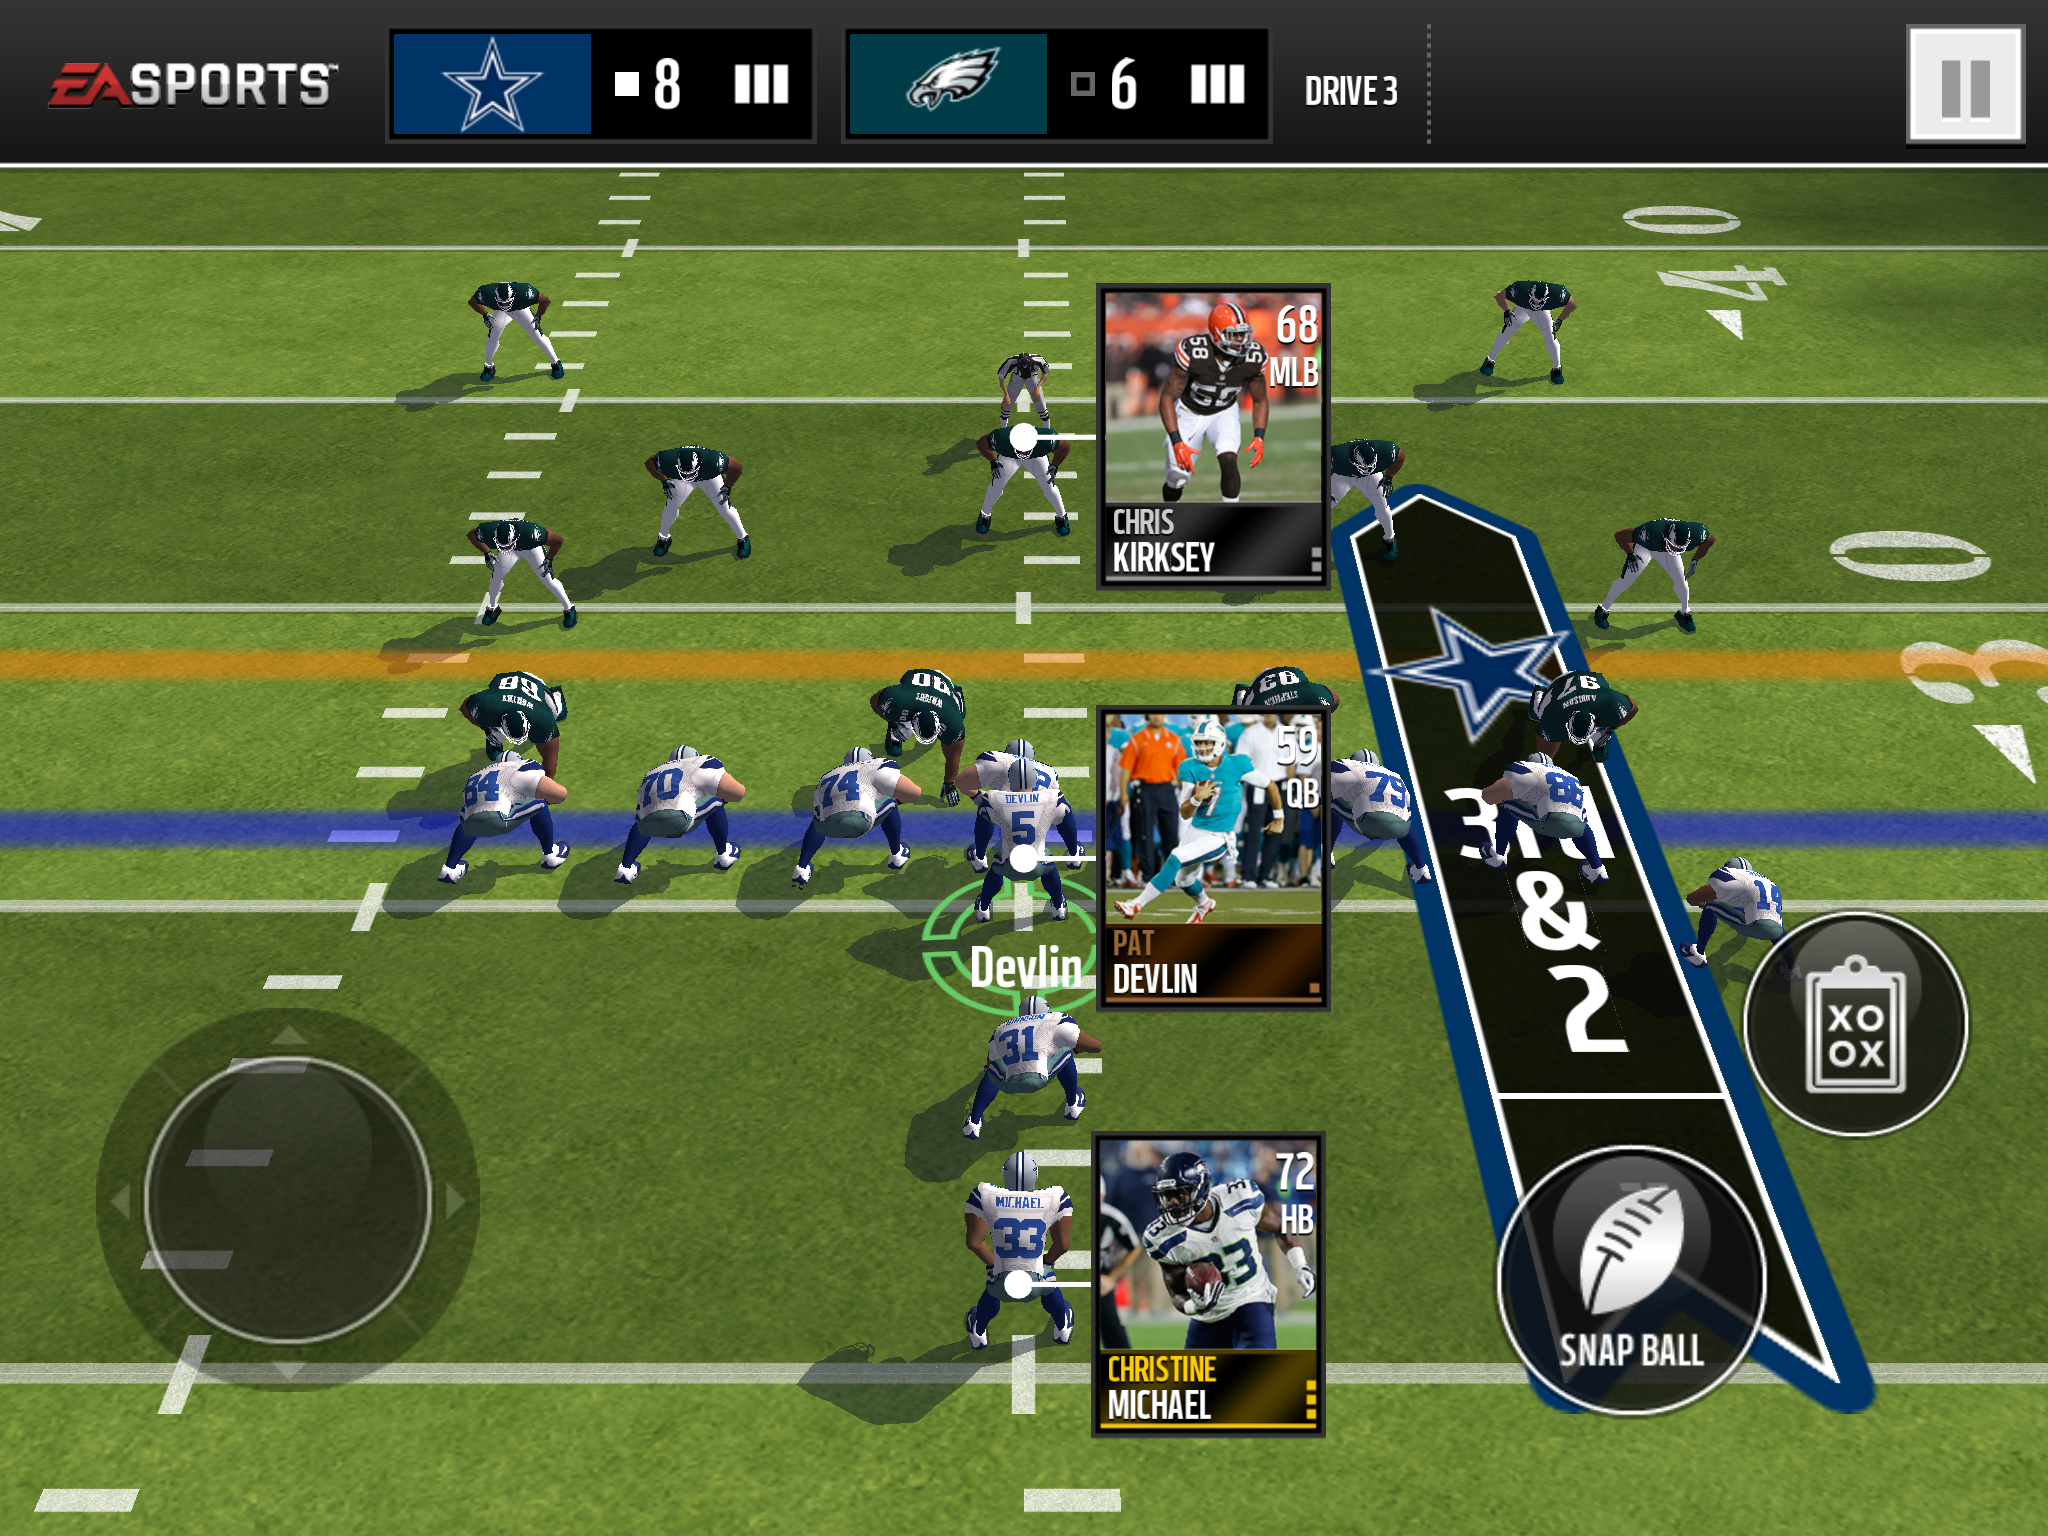 madden nfl mobile hack cheats how to get free coins and cash ios